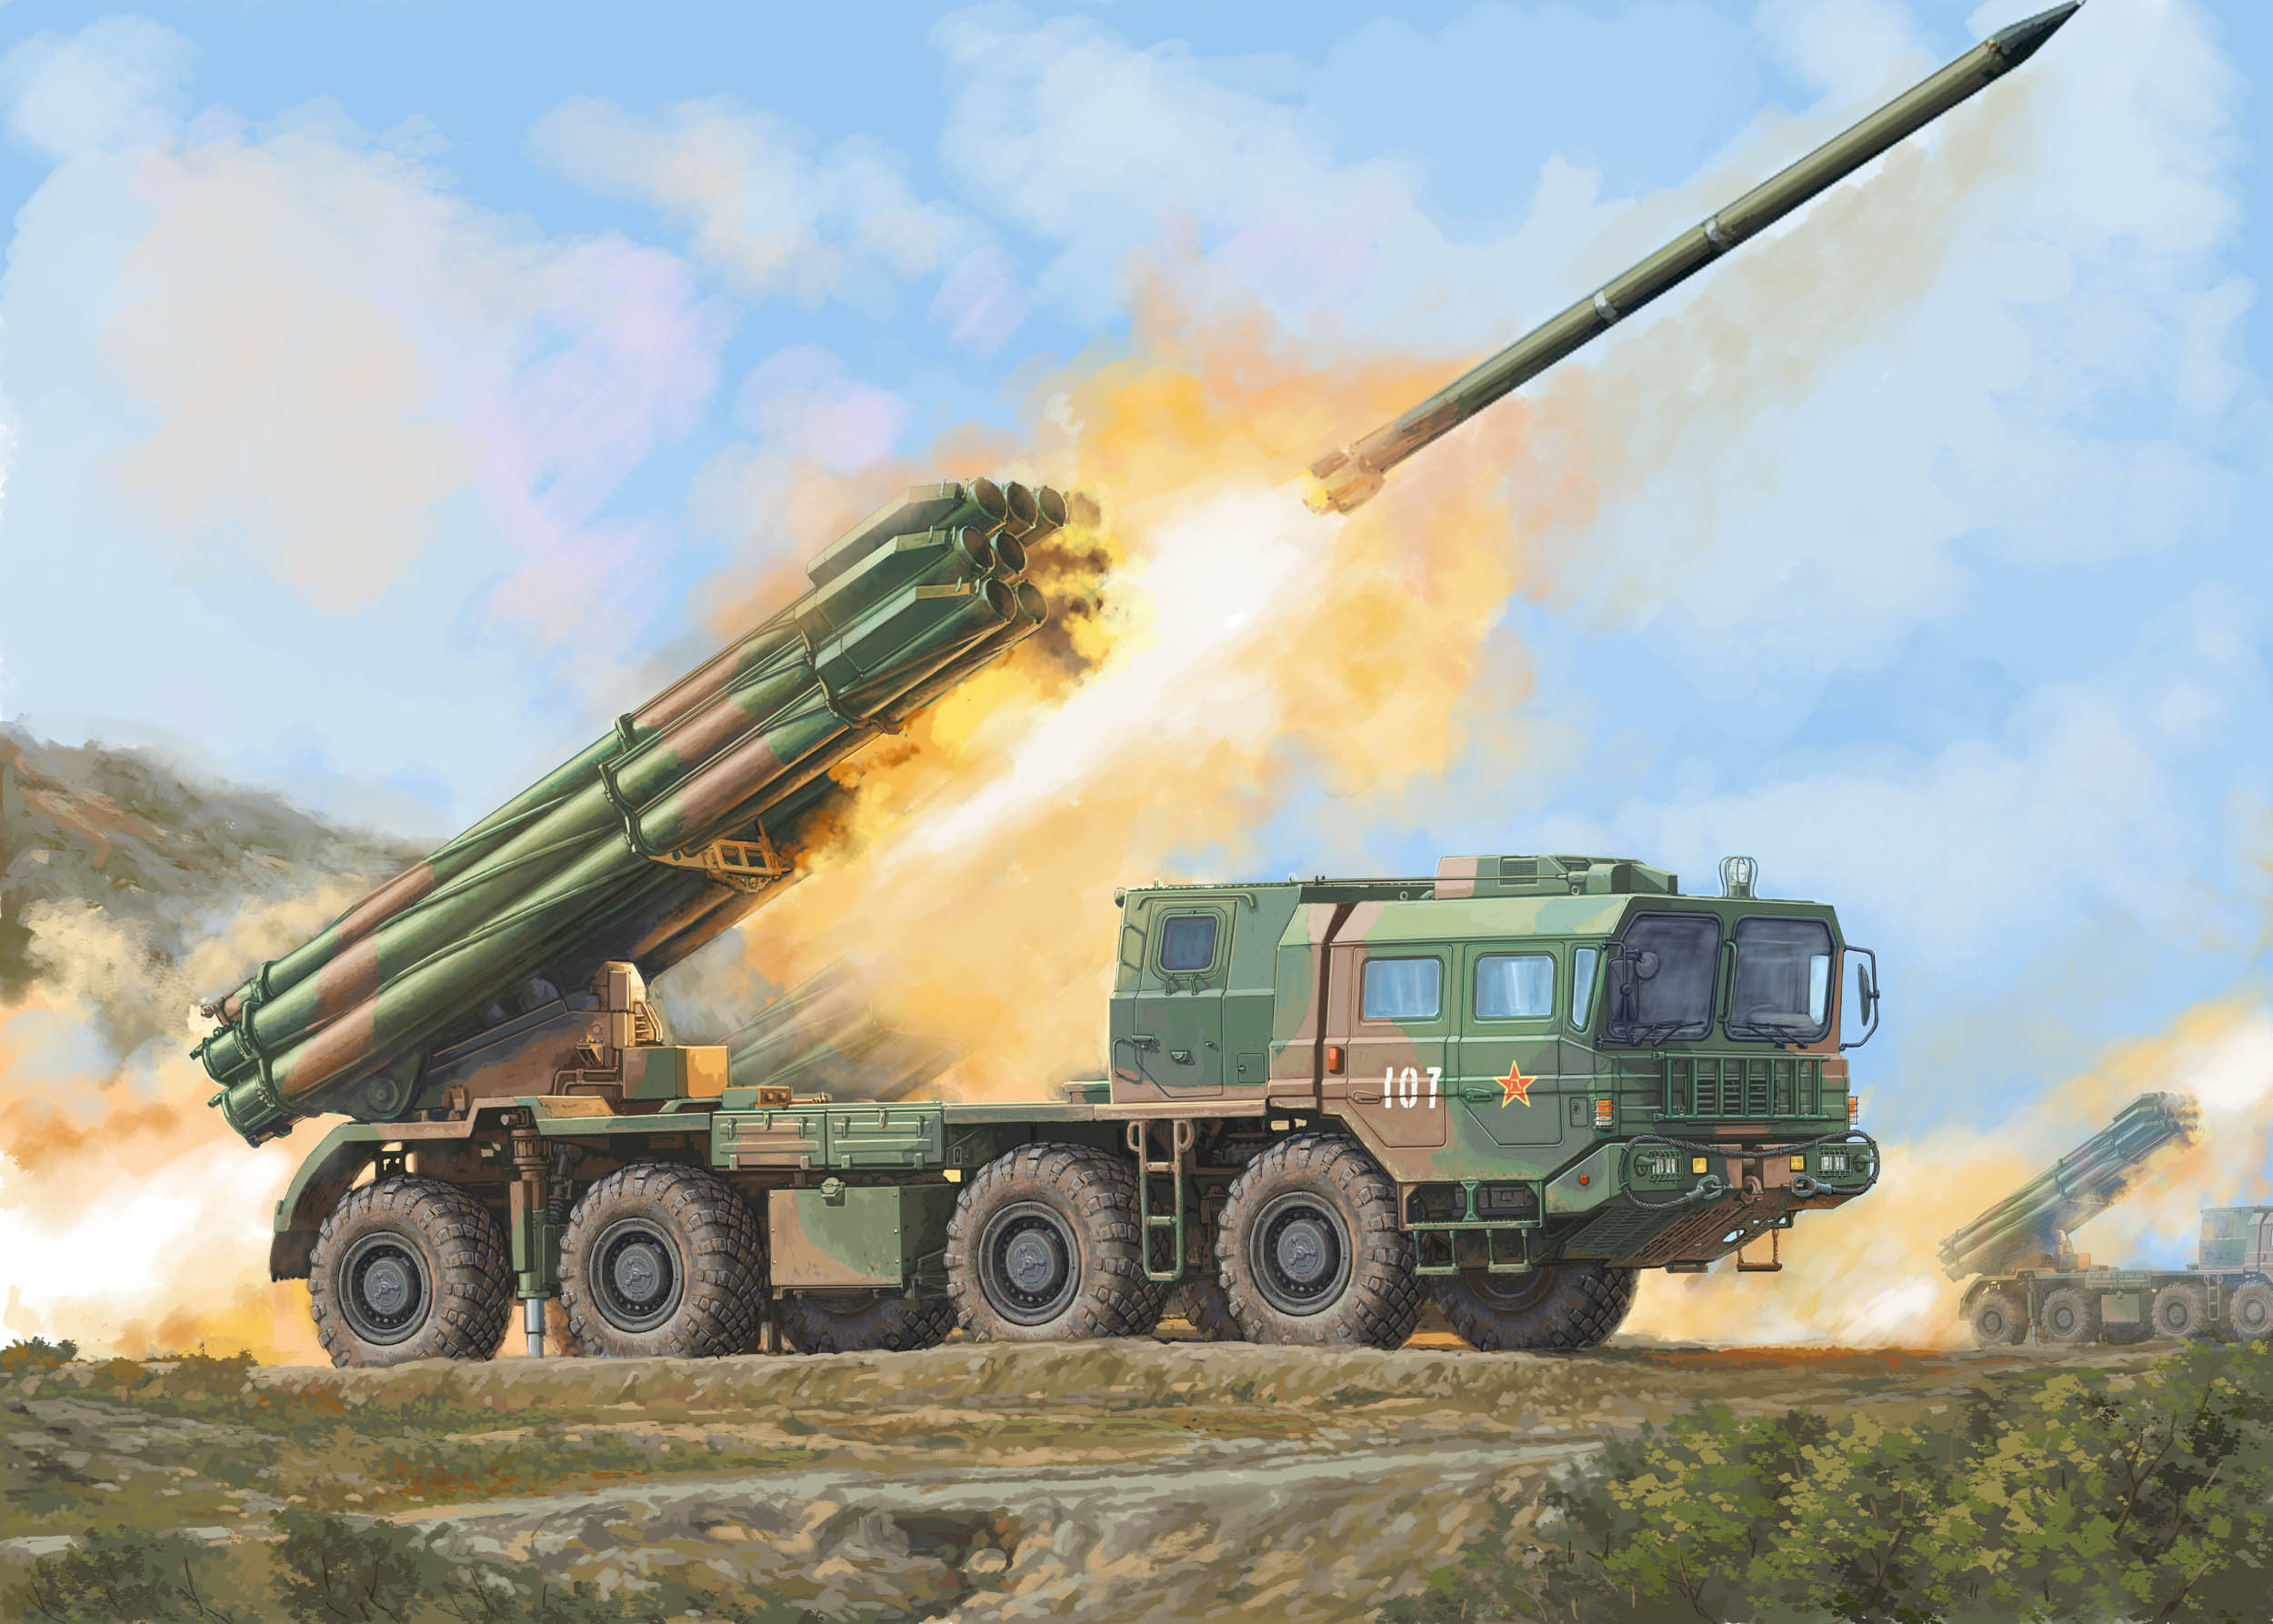 Trumpeter 01069 1/35 SCALE China PHL-03 MULTIPLE LAUNCH ROCKET SYSTEM MODEL